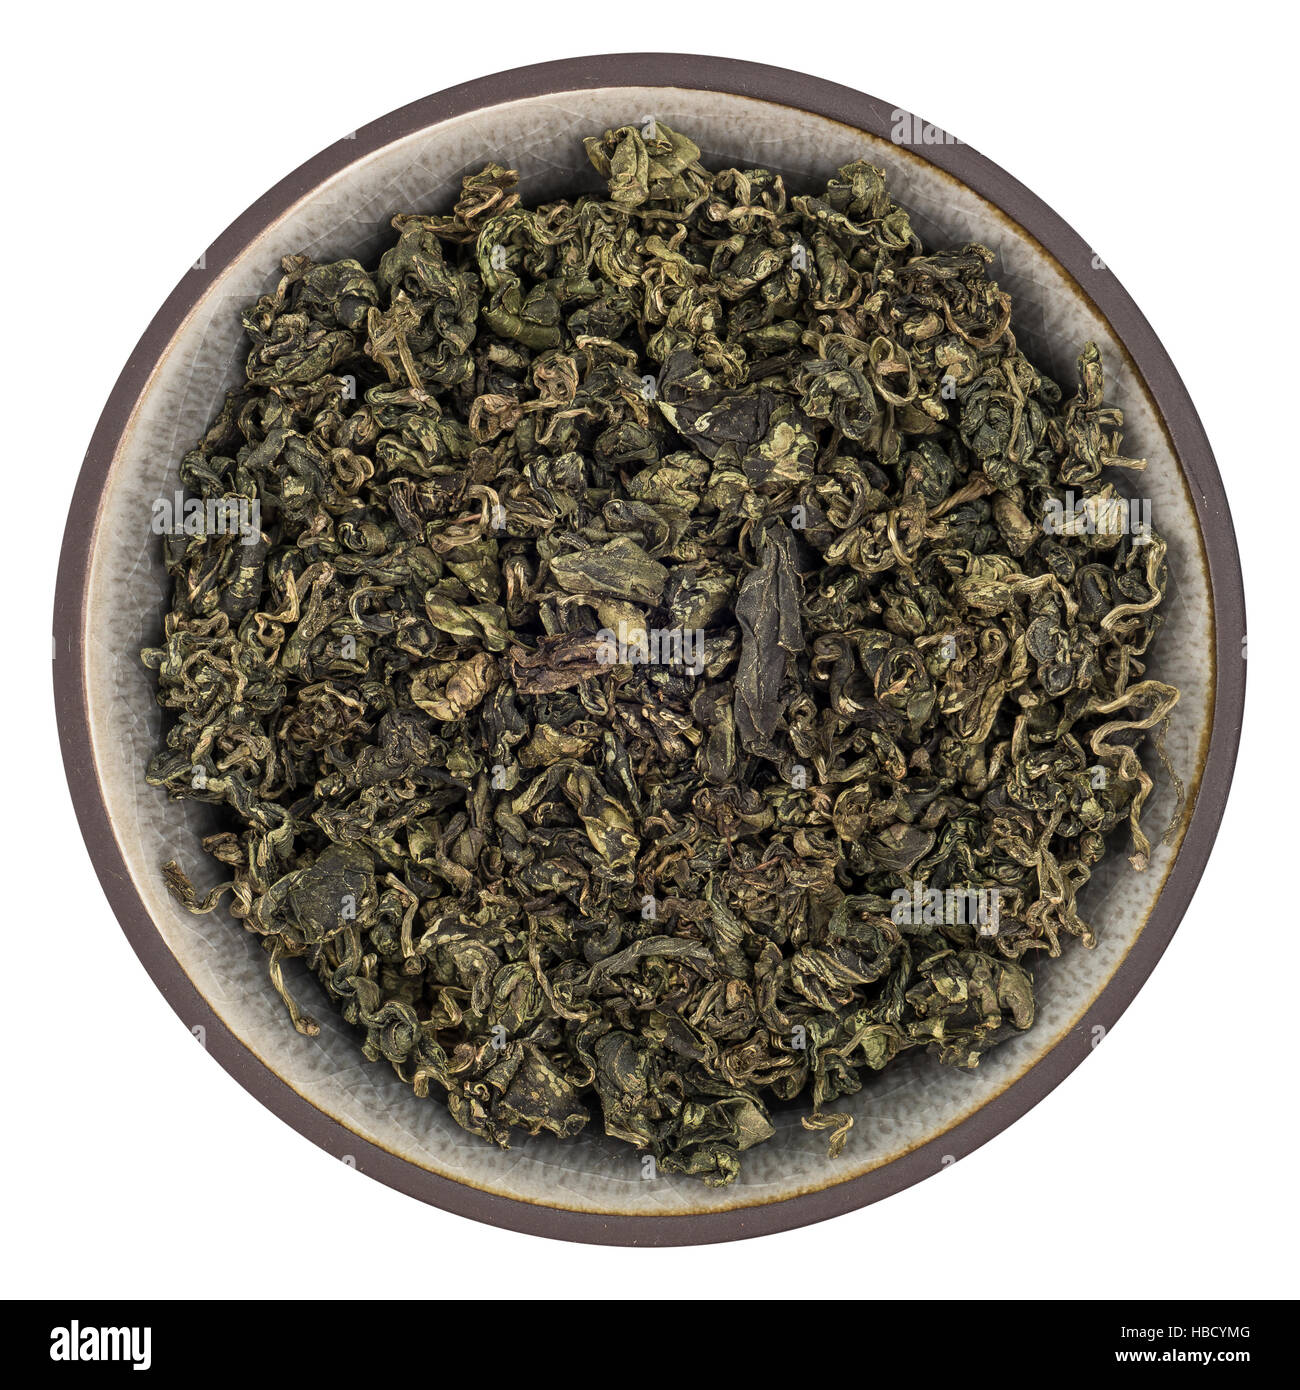 Organic Jiaogulan Whole Leaves Tea in Bowl Isolated Top